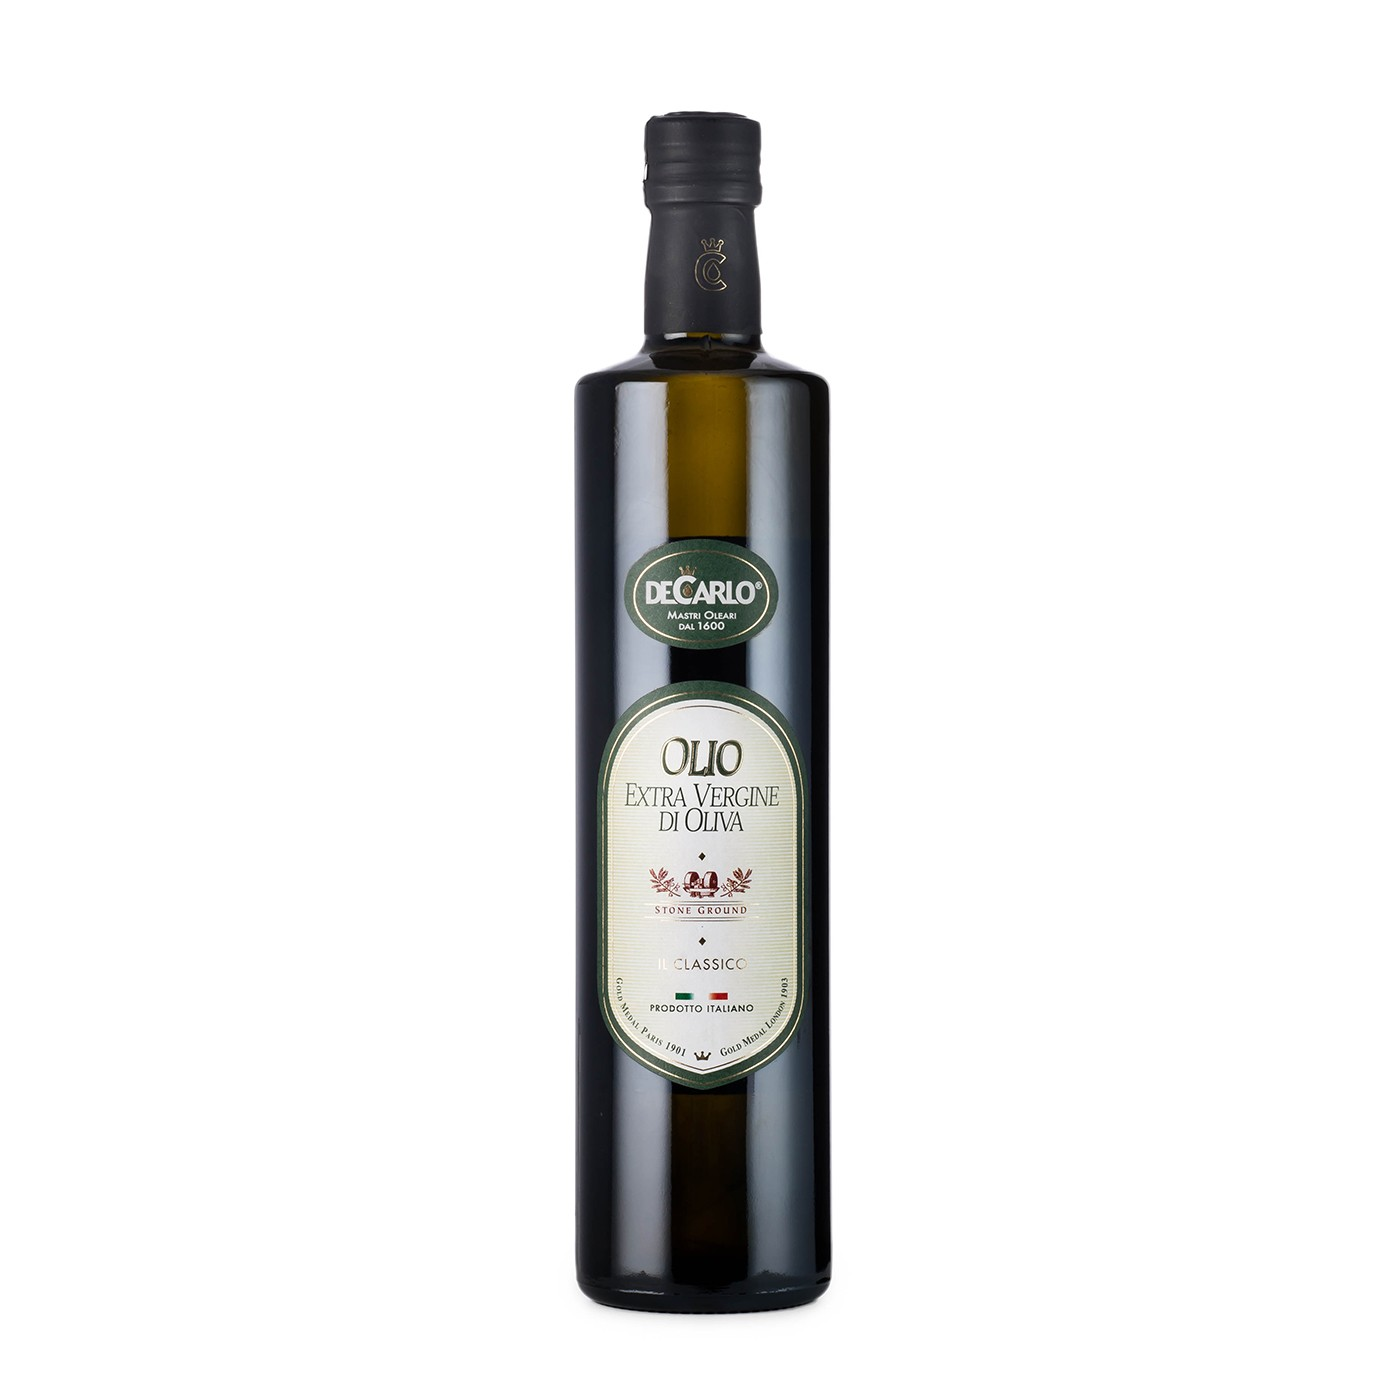 Classico Extra Virgin Olive Oil 25.4 oz